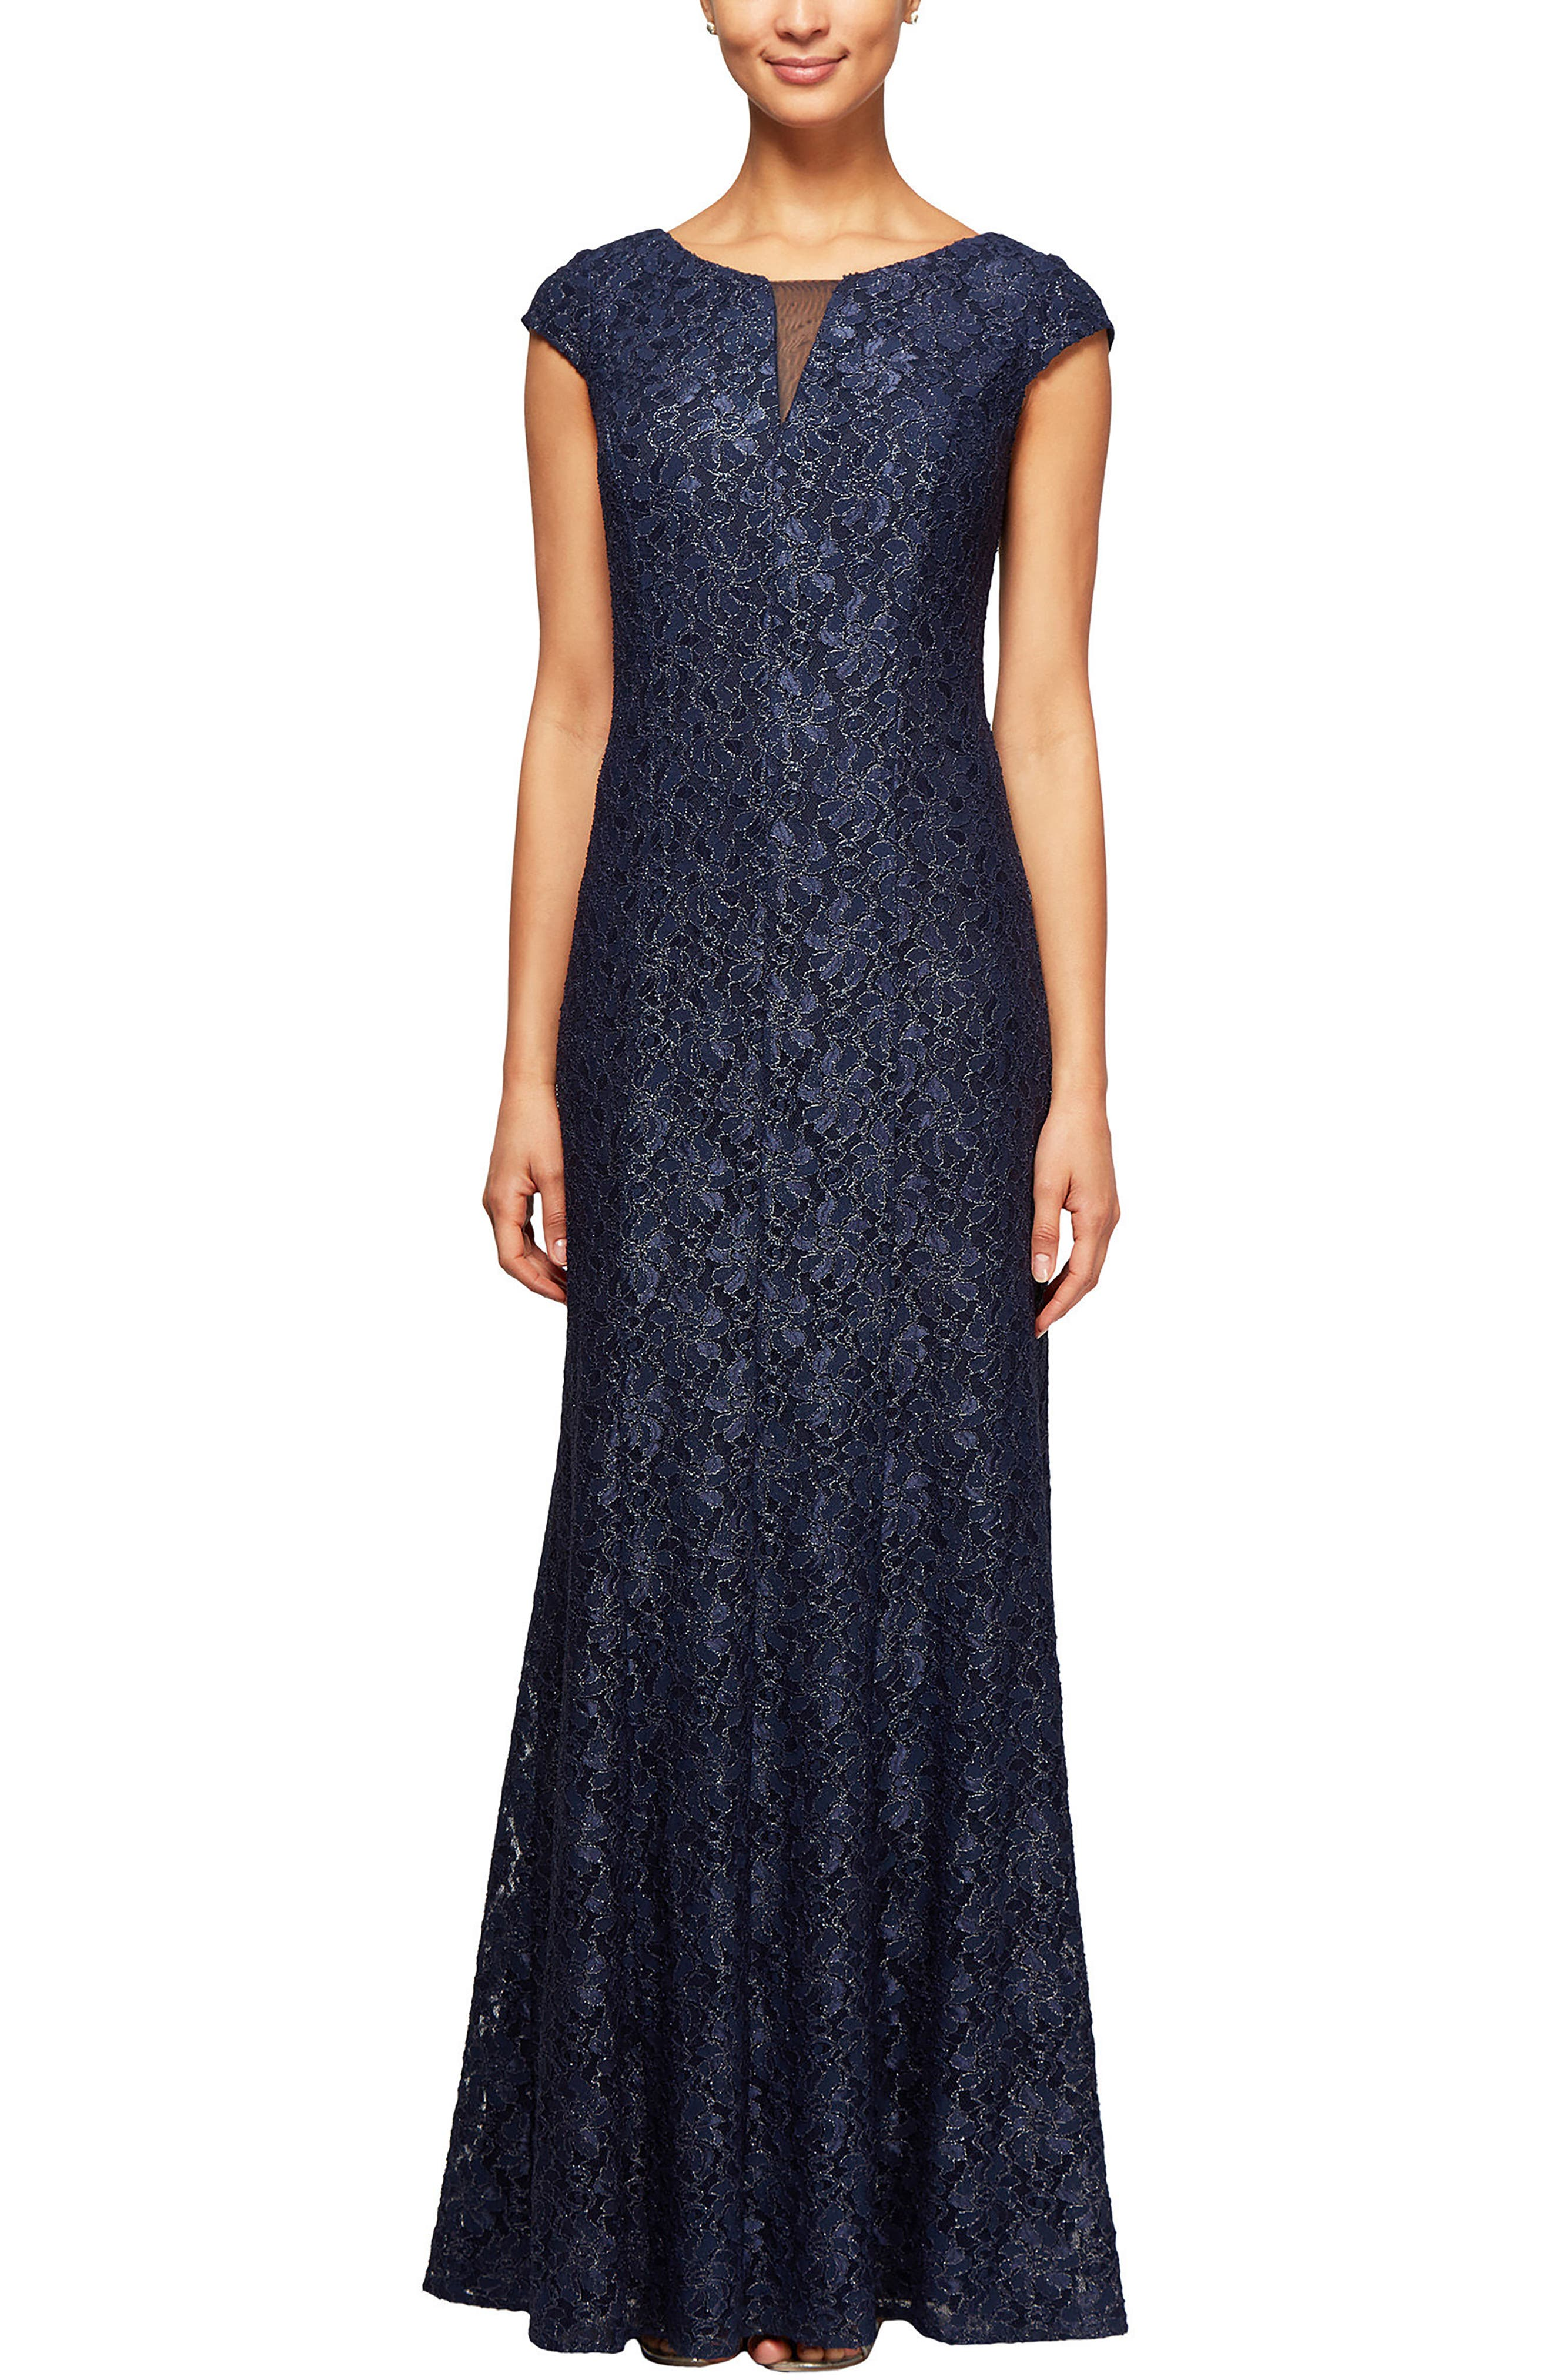 Metallic Lace A-Line Gown,                         Main,                         color, Navy/ Silver